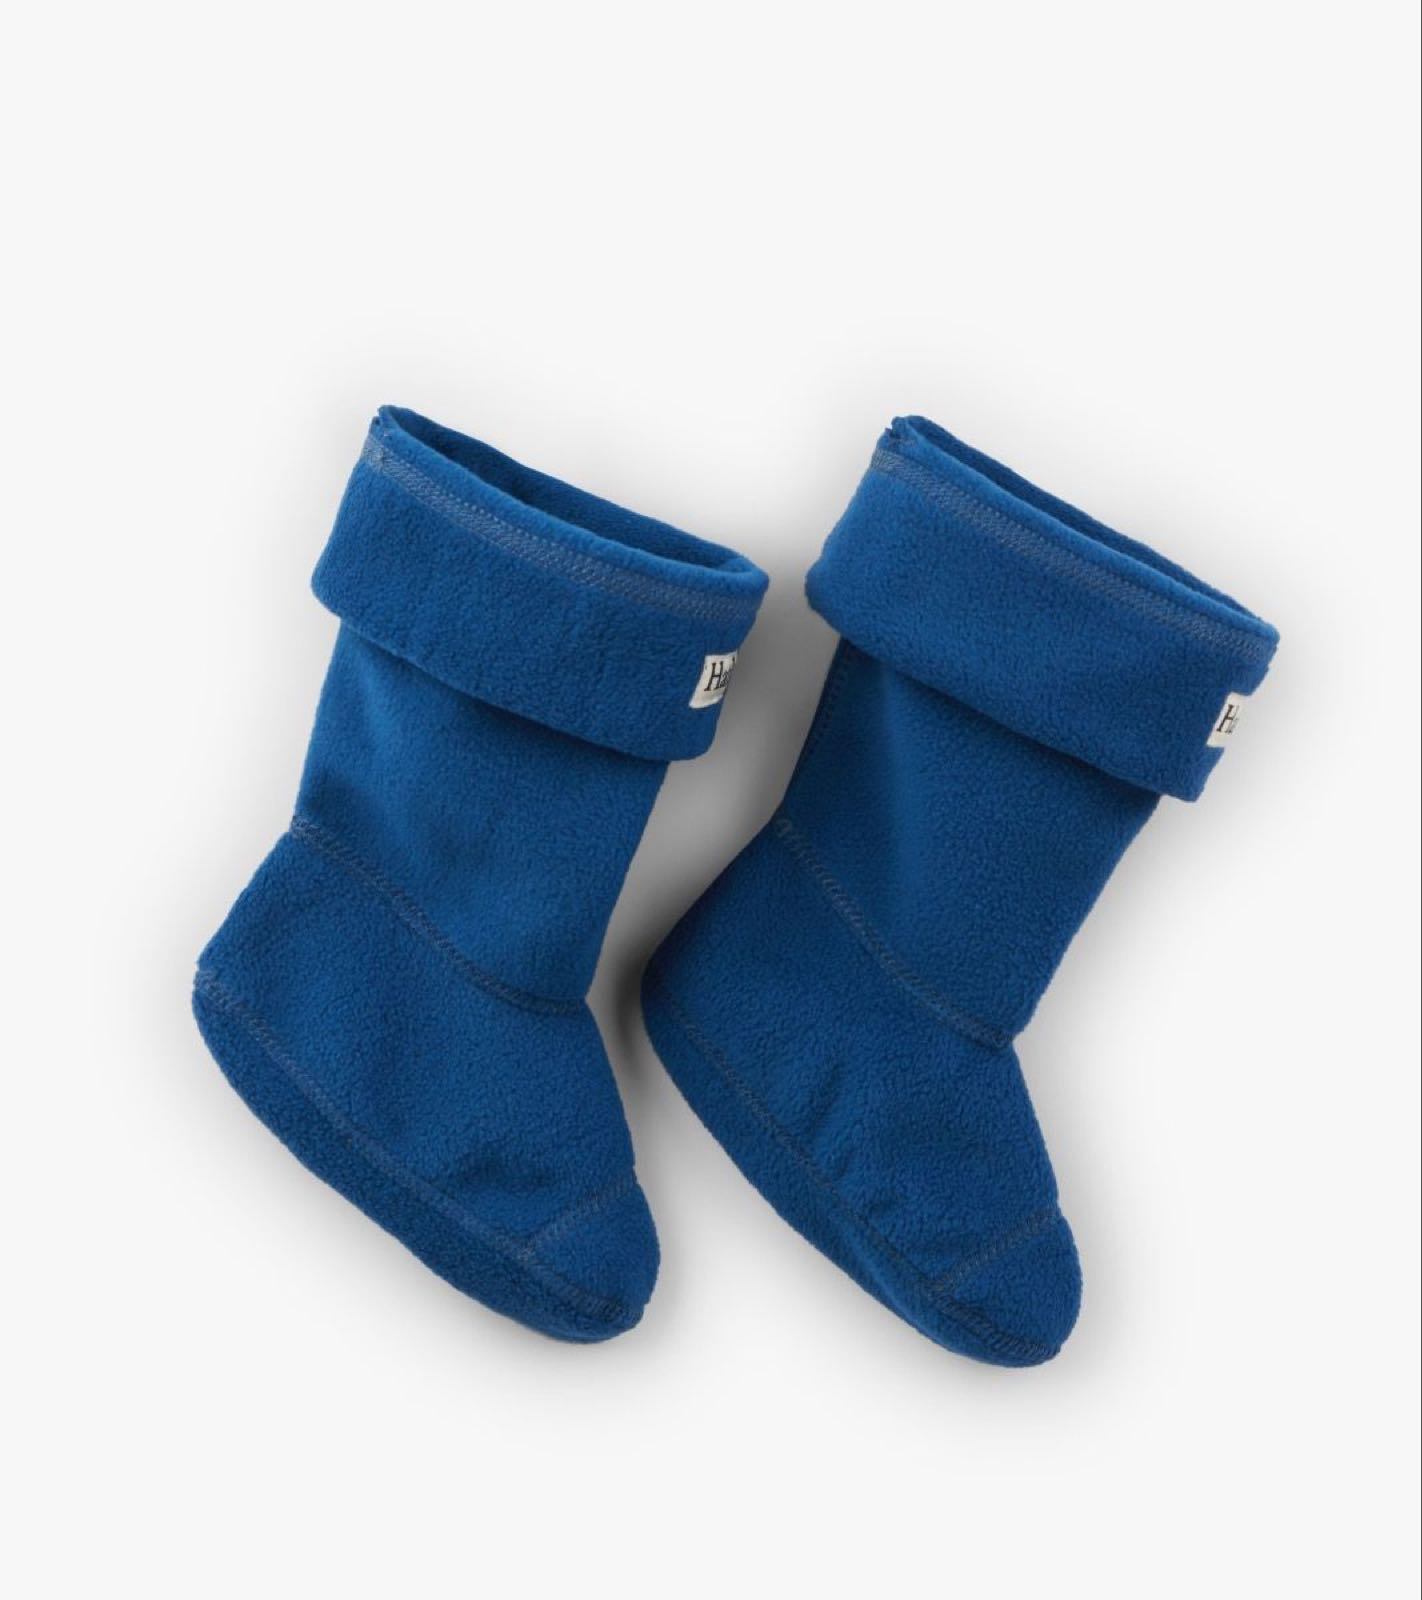 HATLEY ACCESSORIES Navy Boots Liners